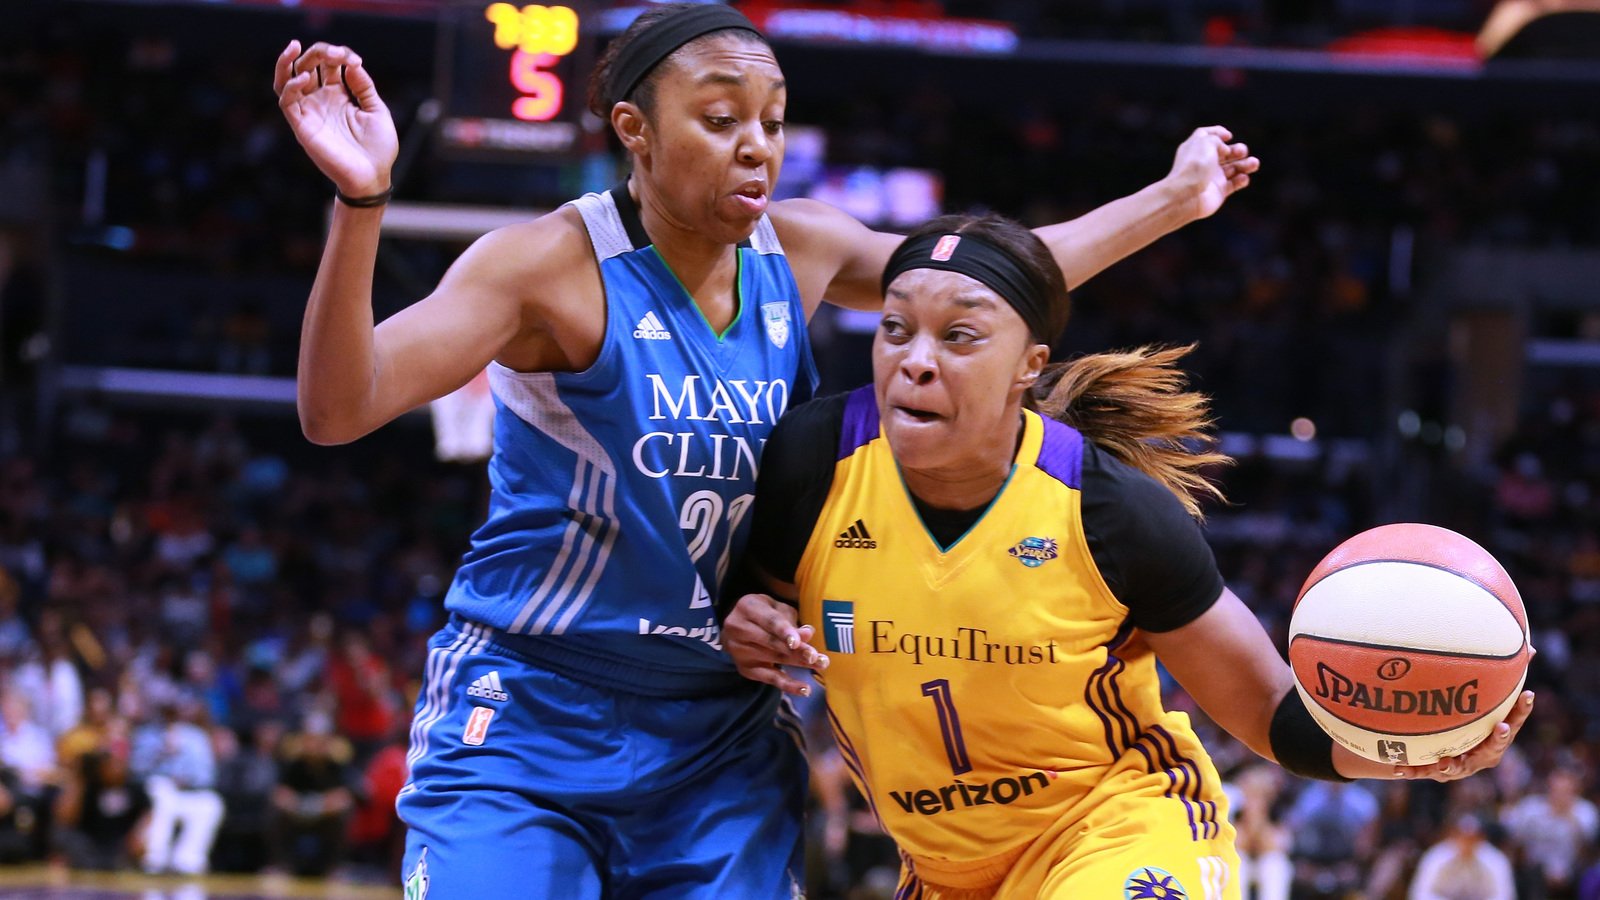 Alana Beard of LA Sparks wins WNBA Defensive Player of Year